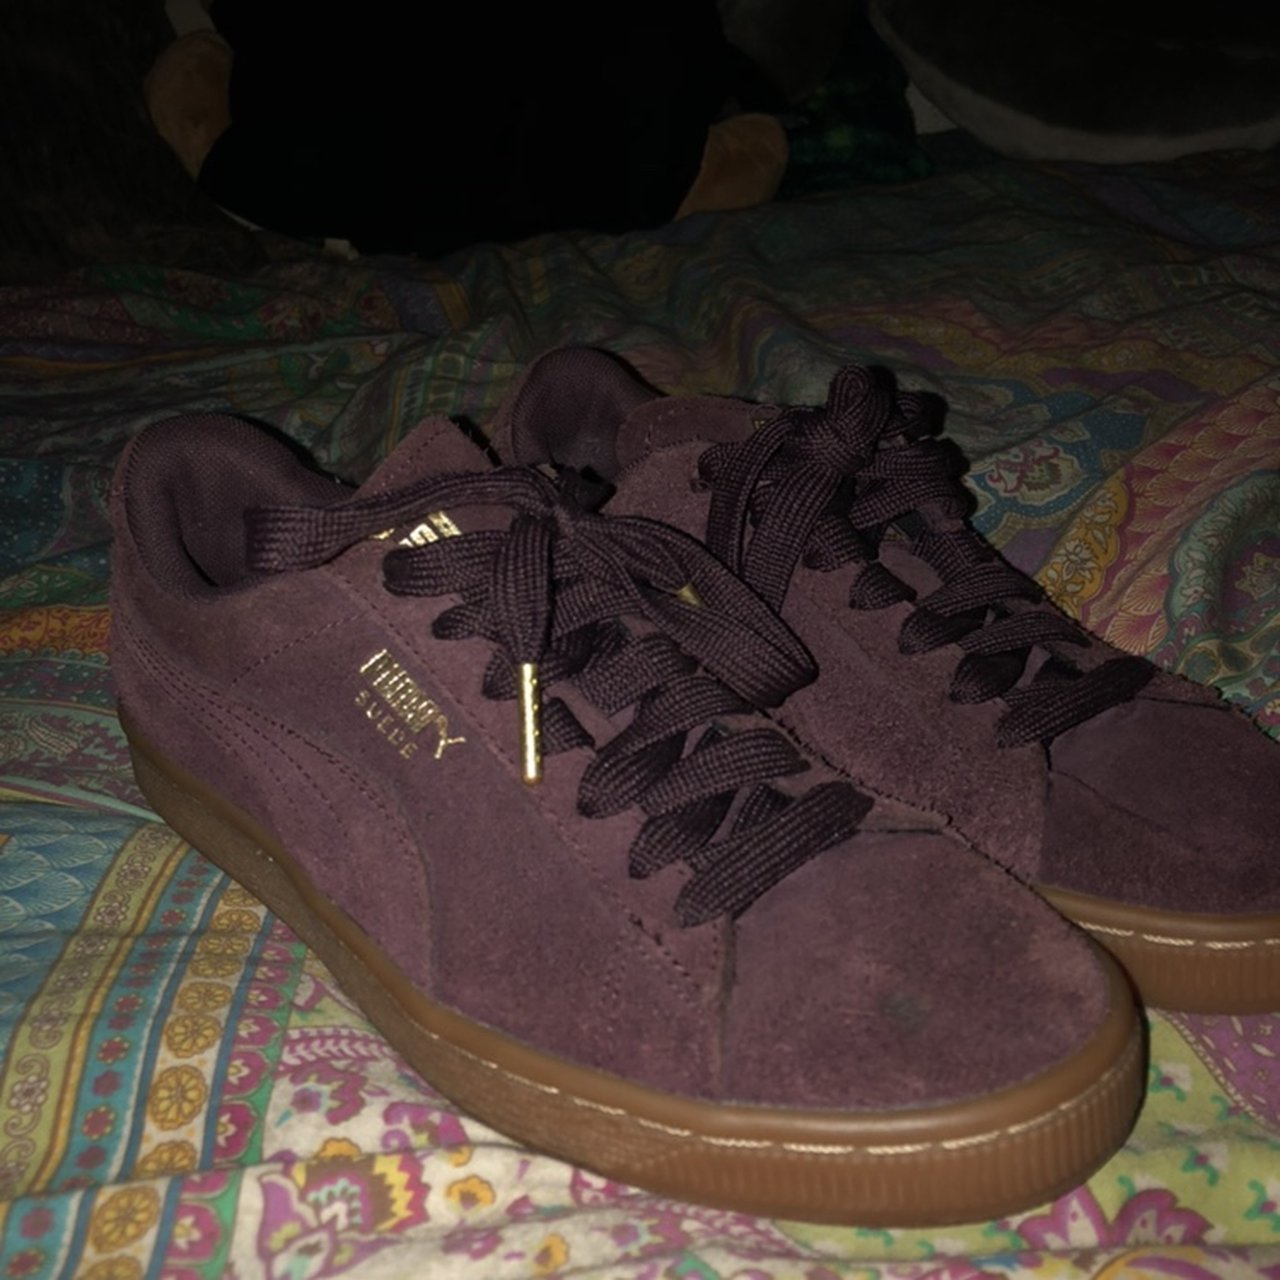 Puma suede gently worn sneakers super comfy and cute hardly - Depop 497a5c1ac